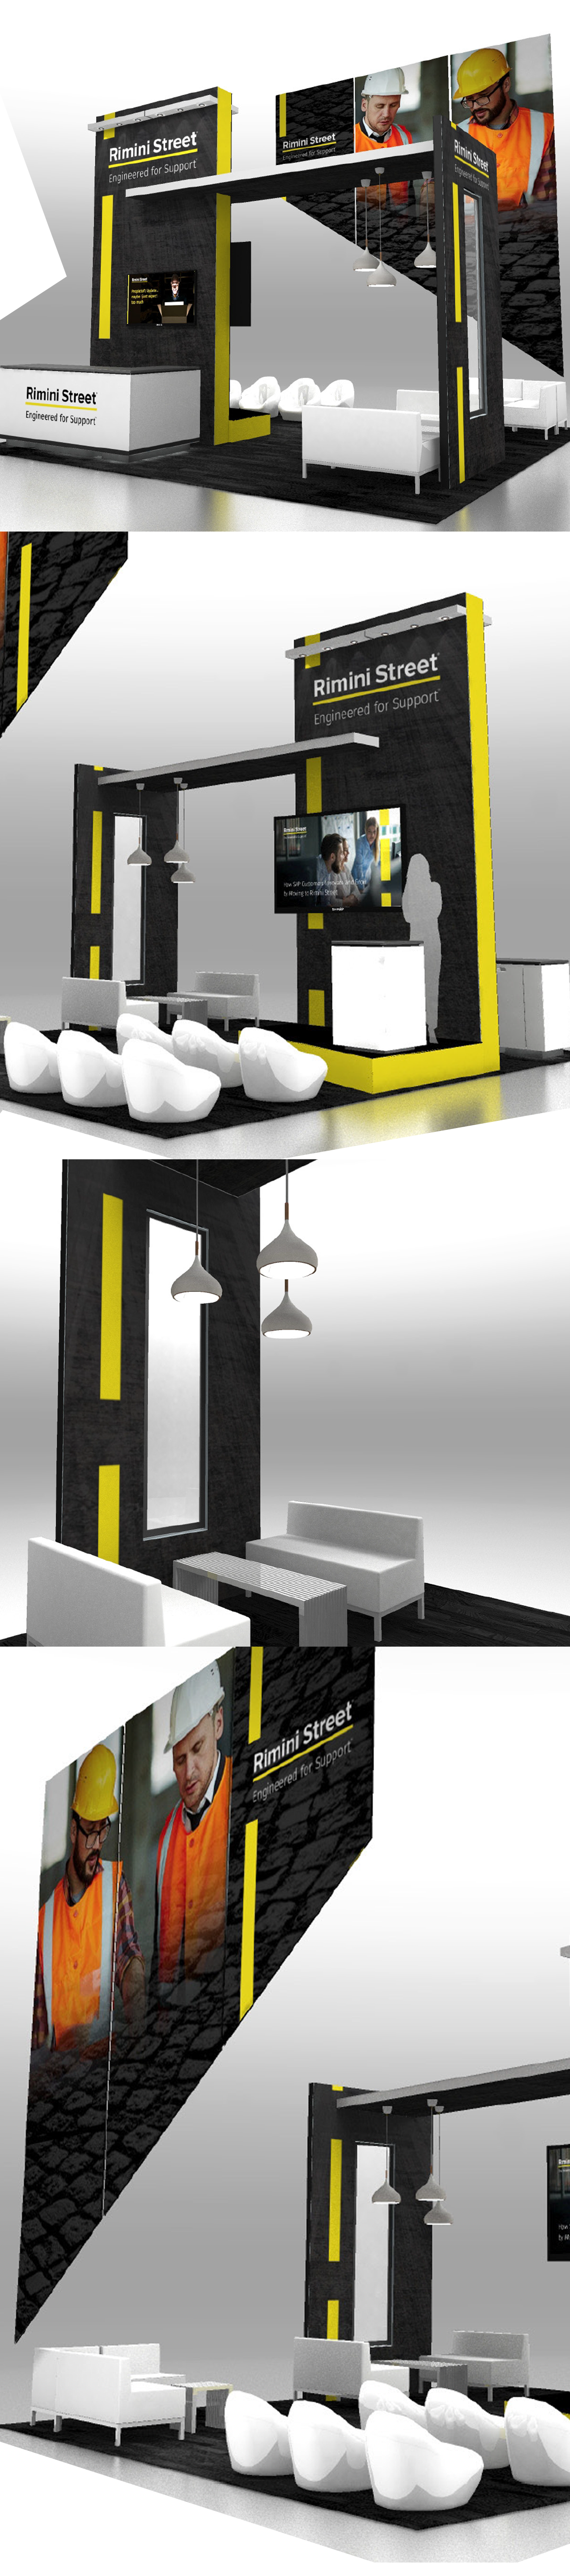 booth design towers with hanging sign-1